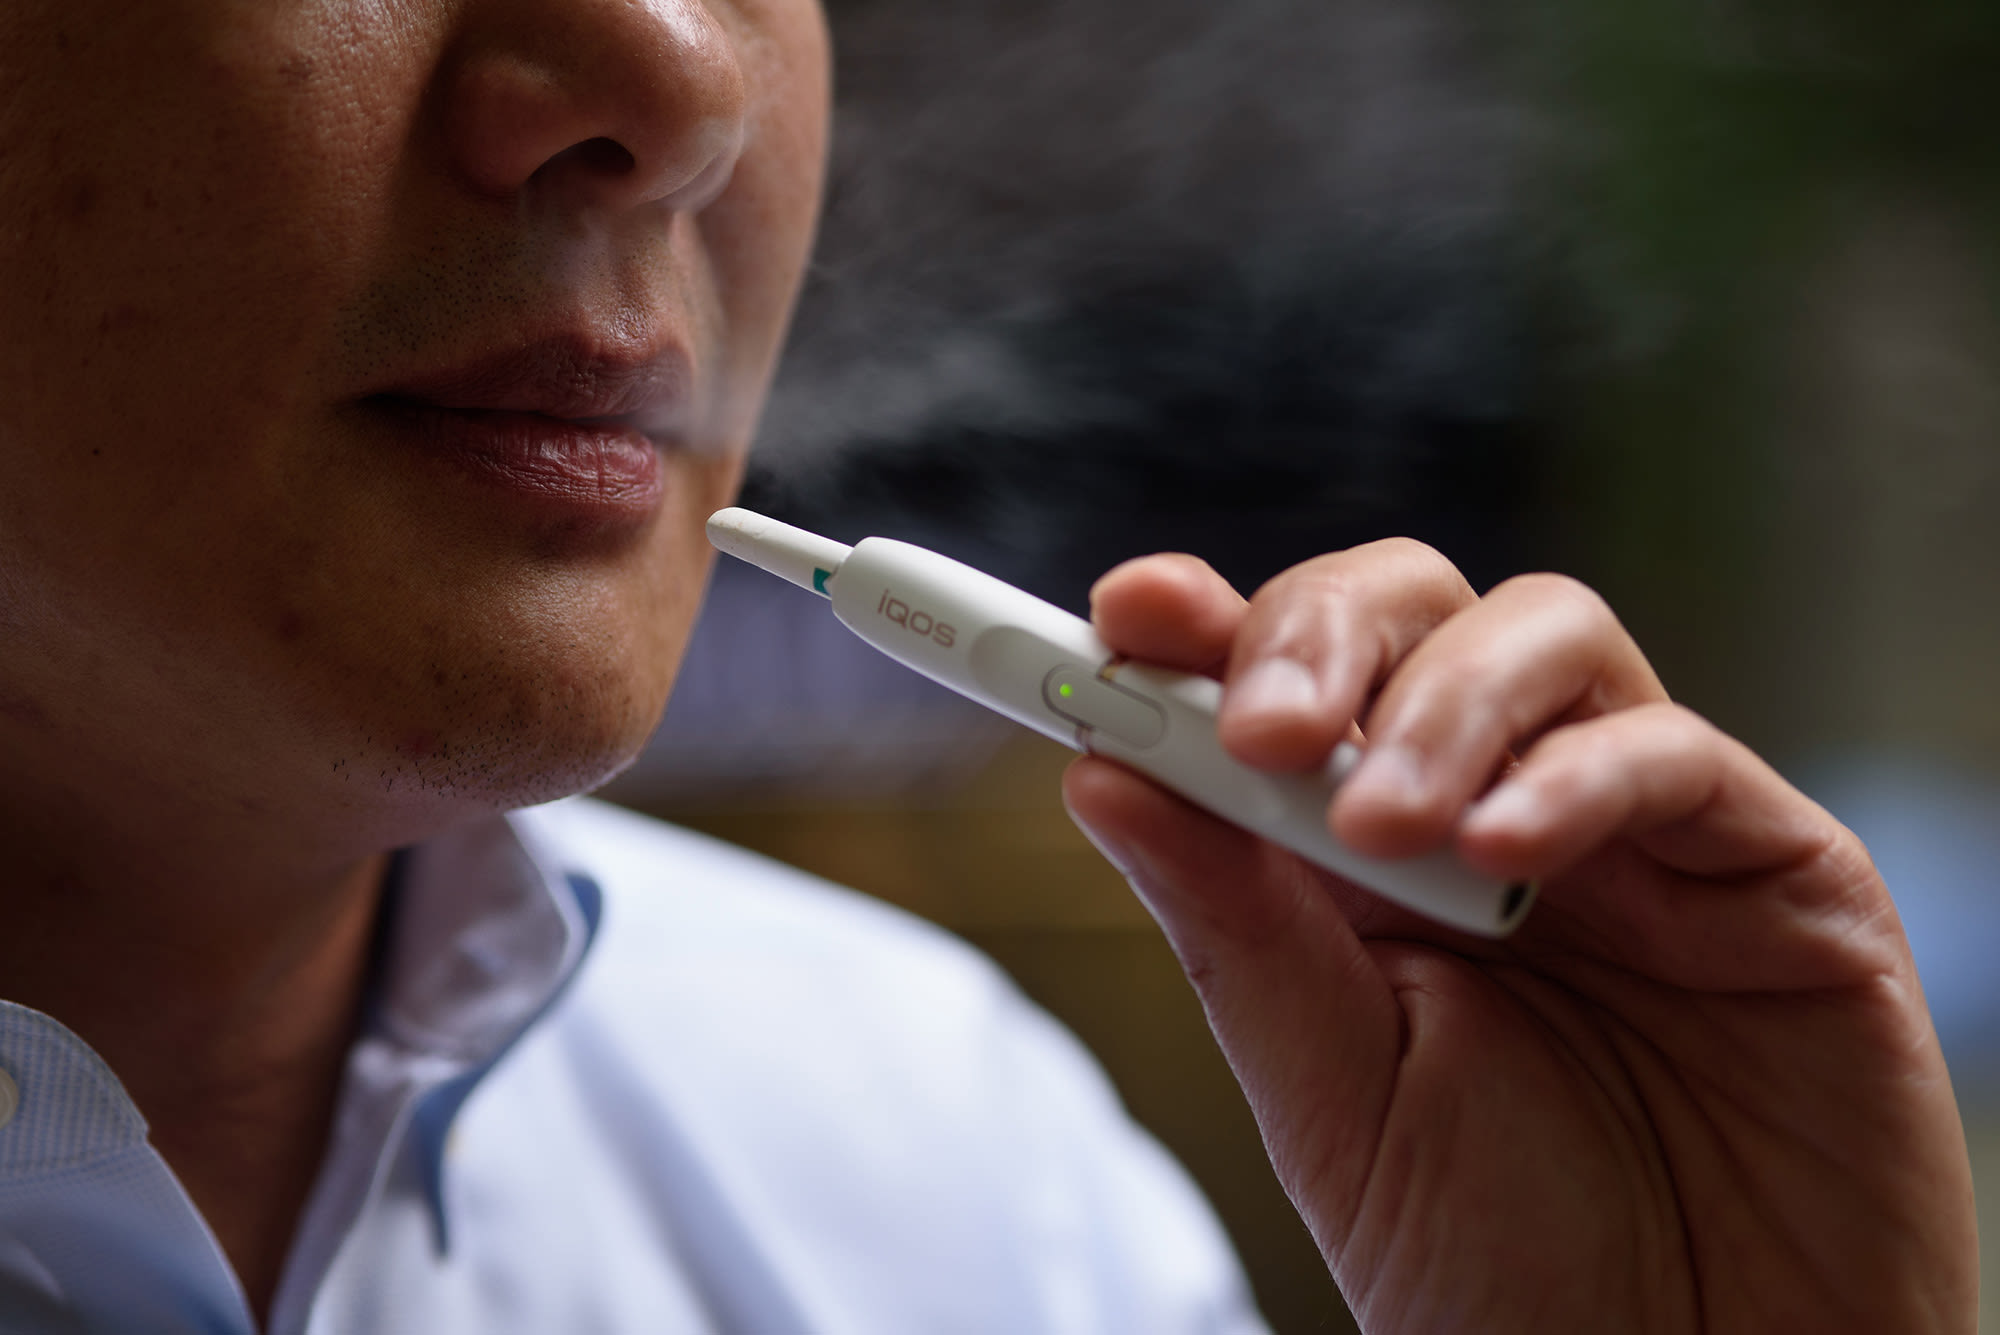 FDA clears Philip Morris' iQOS, Altria prepares to sell the